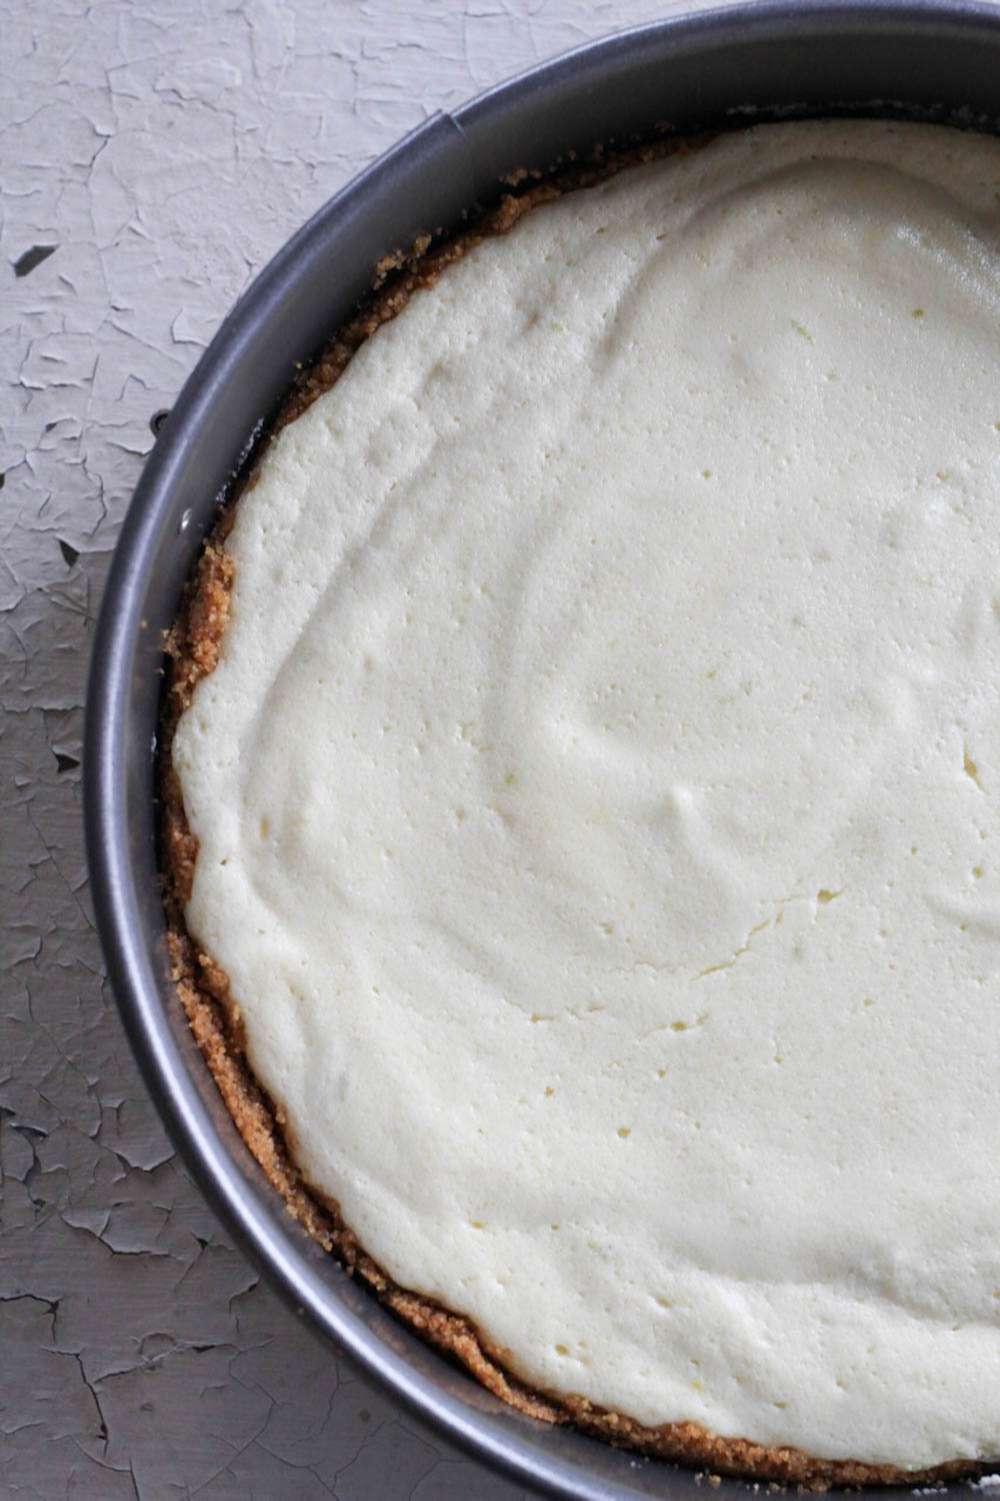 Key Lime Pie in Springform Pan